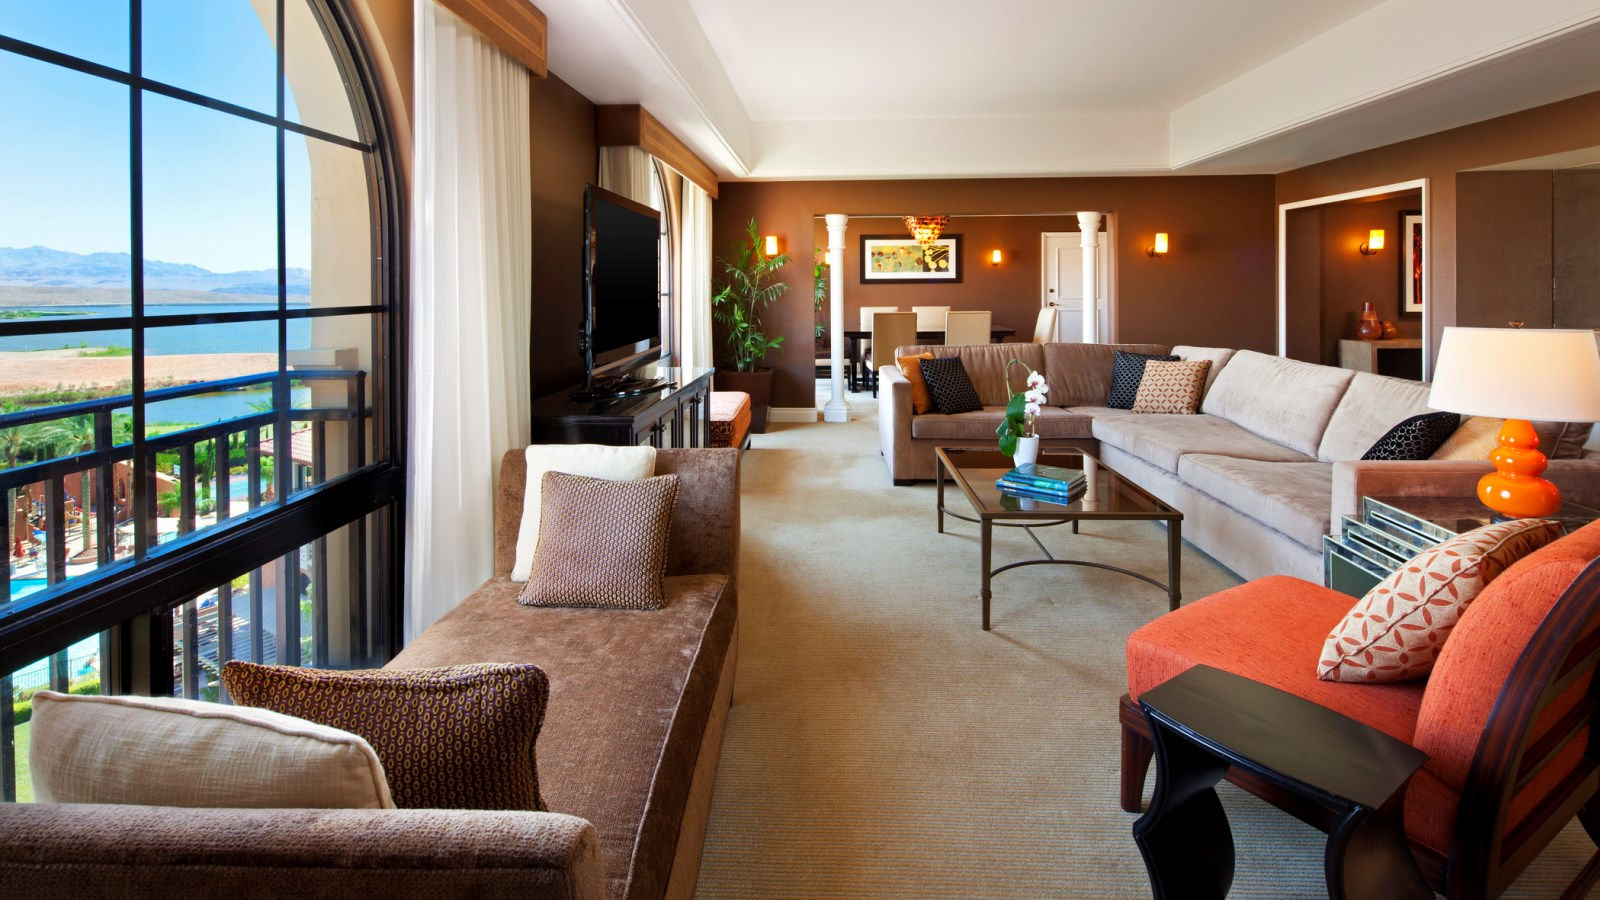 lake las vegas hotels - Presidential Suite